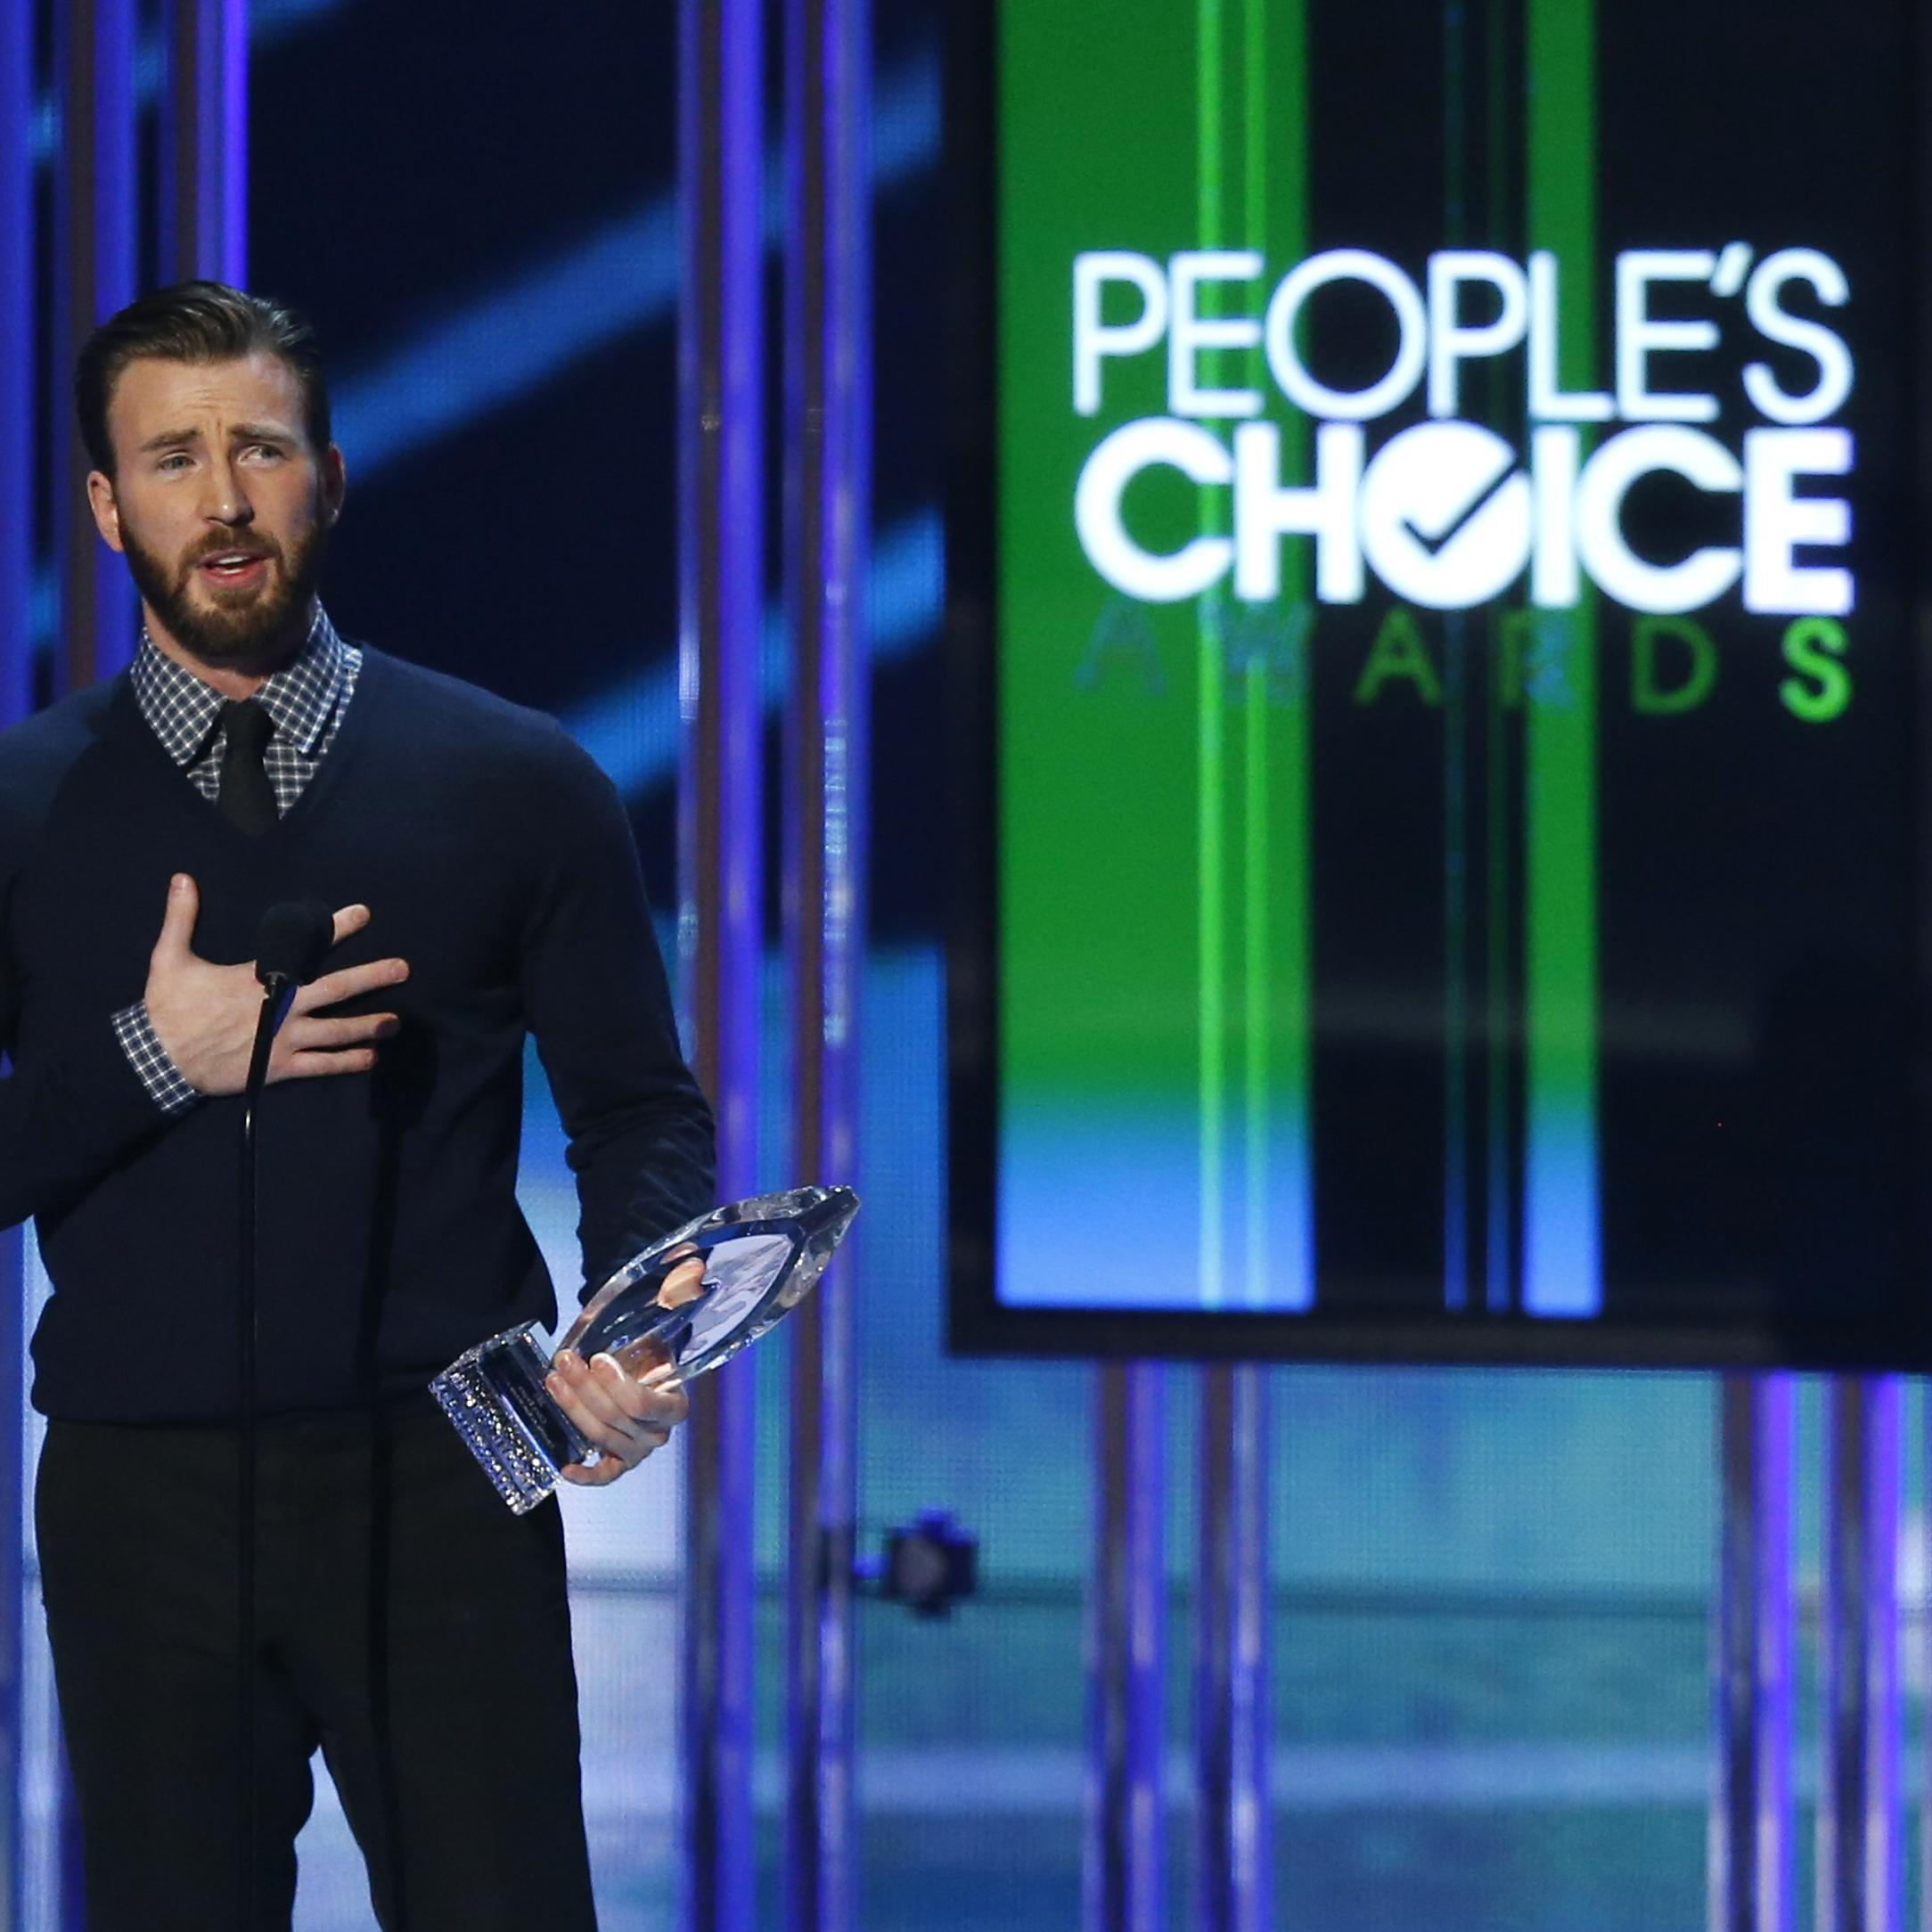 People's Choice Awards Tickets and Hospitality